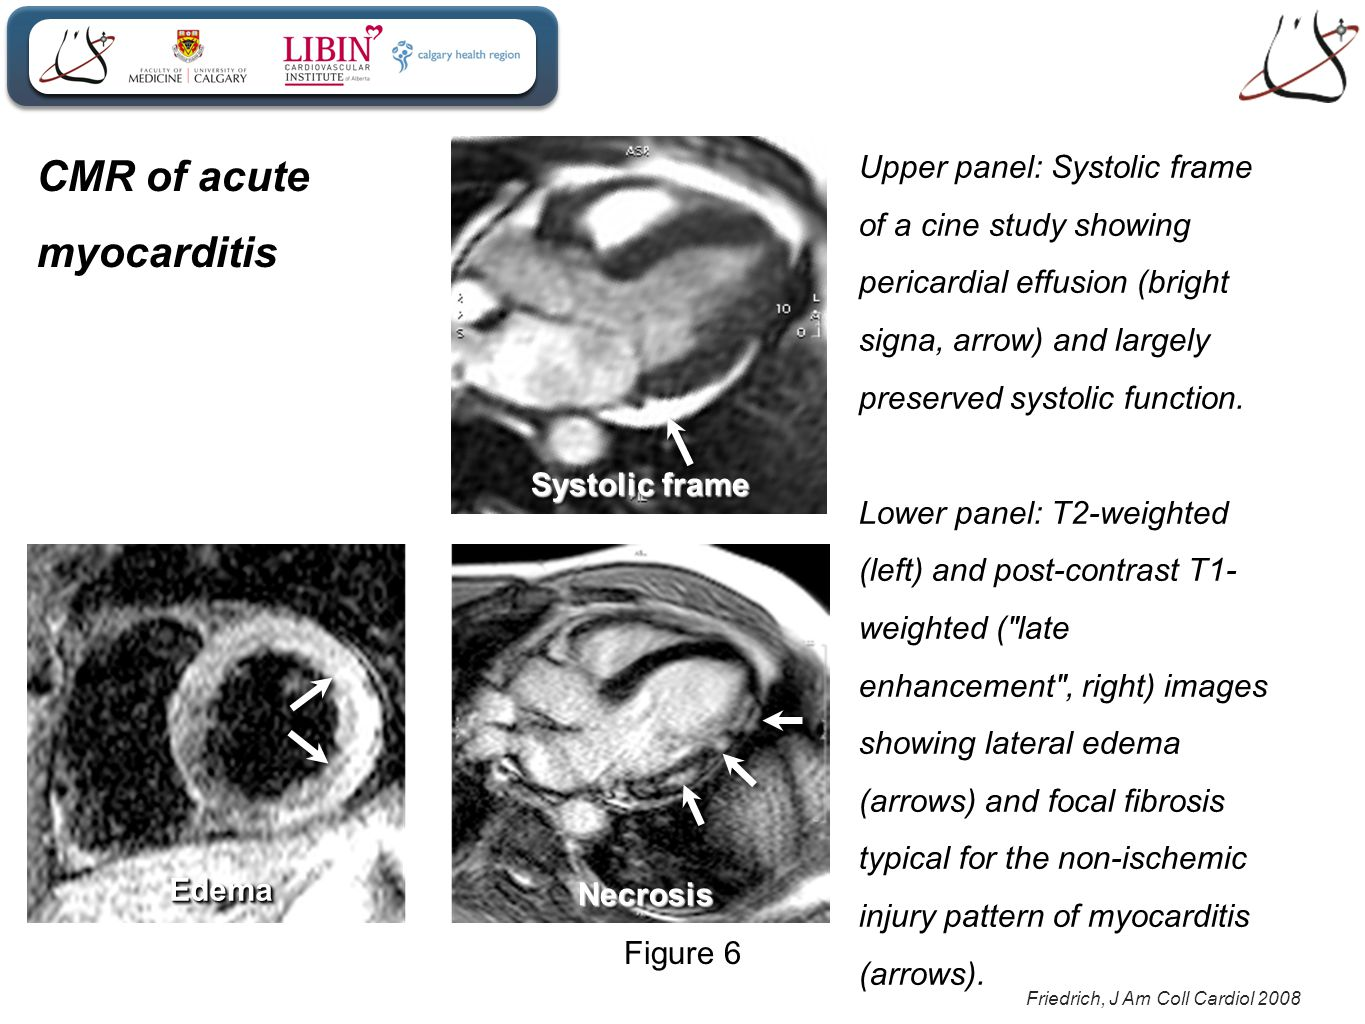 Friedrich, J Am Coll Cardiol 2008 Figure 6 EdemaEdemaNecrosisNecrosis Upper panel: Systolic frame of a cine study showing pericardial effusion (bright signa, arrow) and largely preserved systolic function.